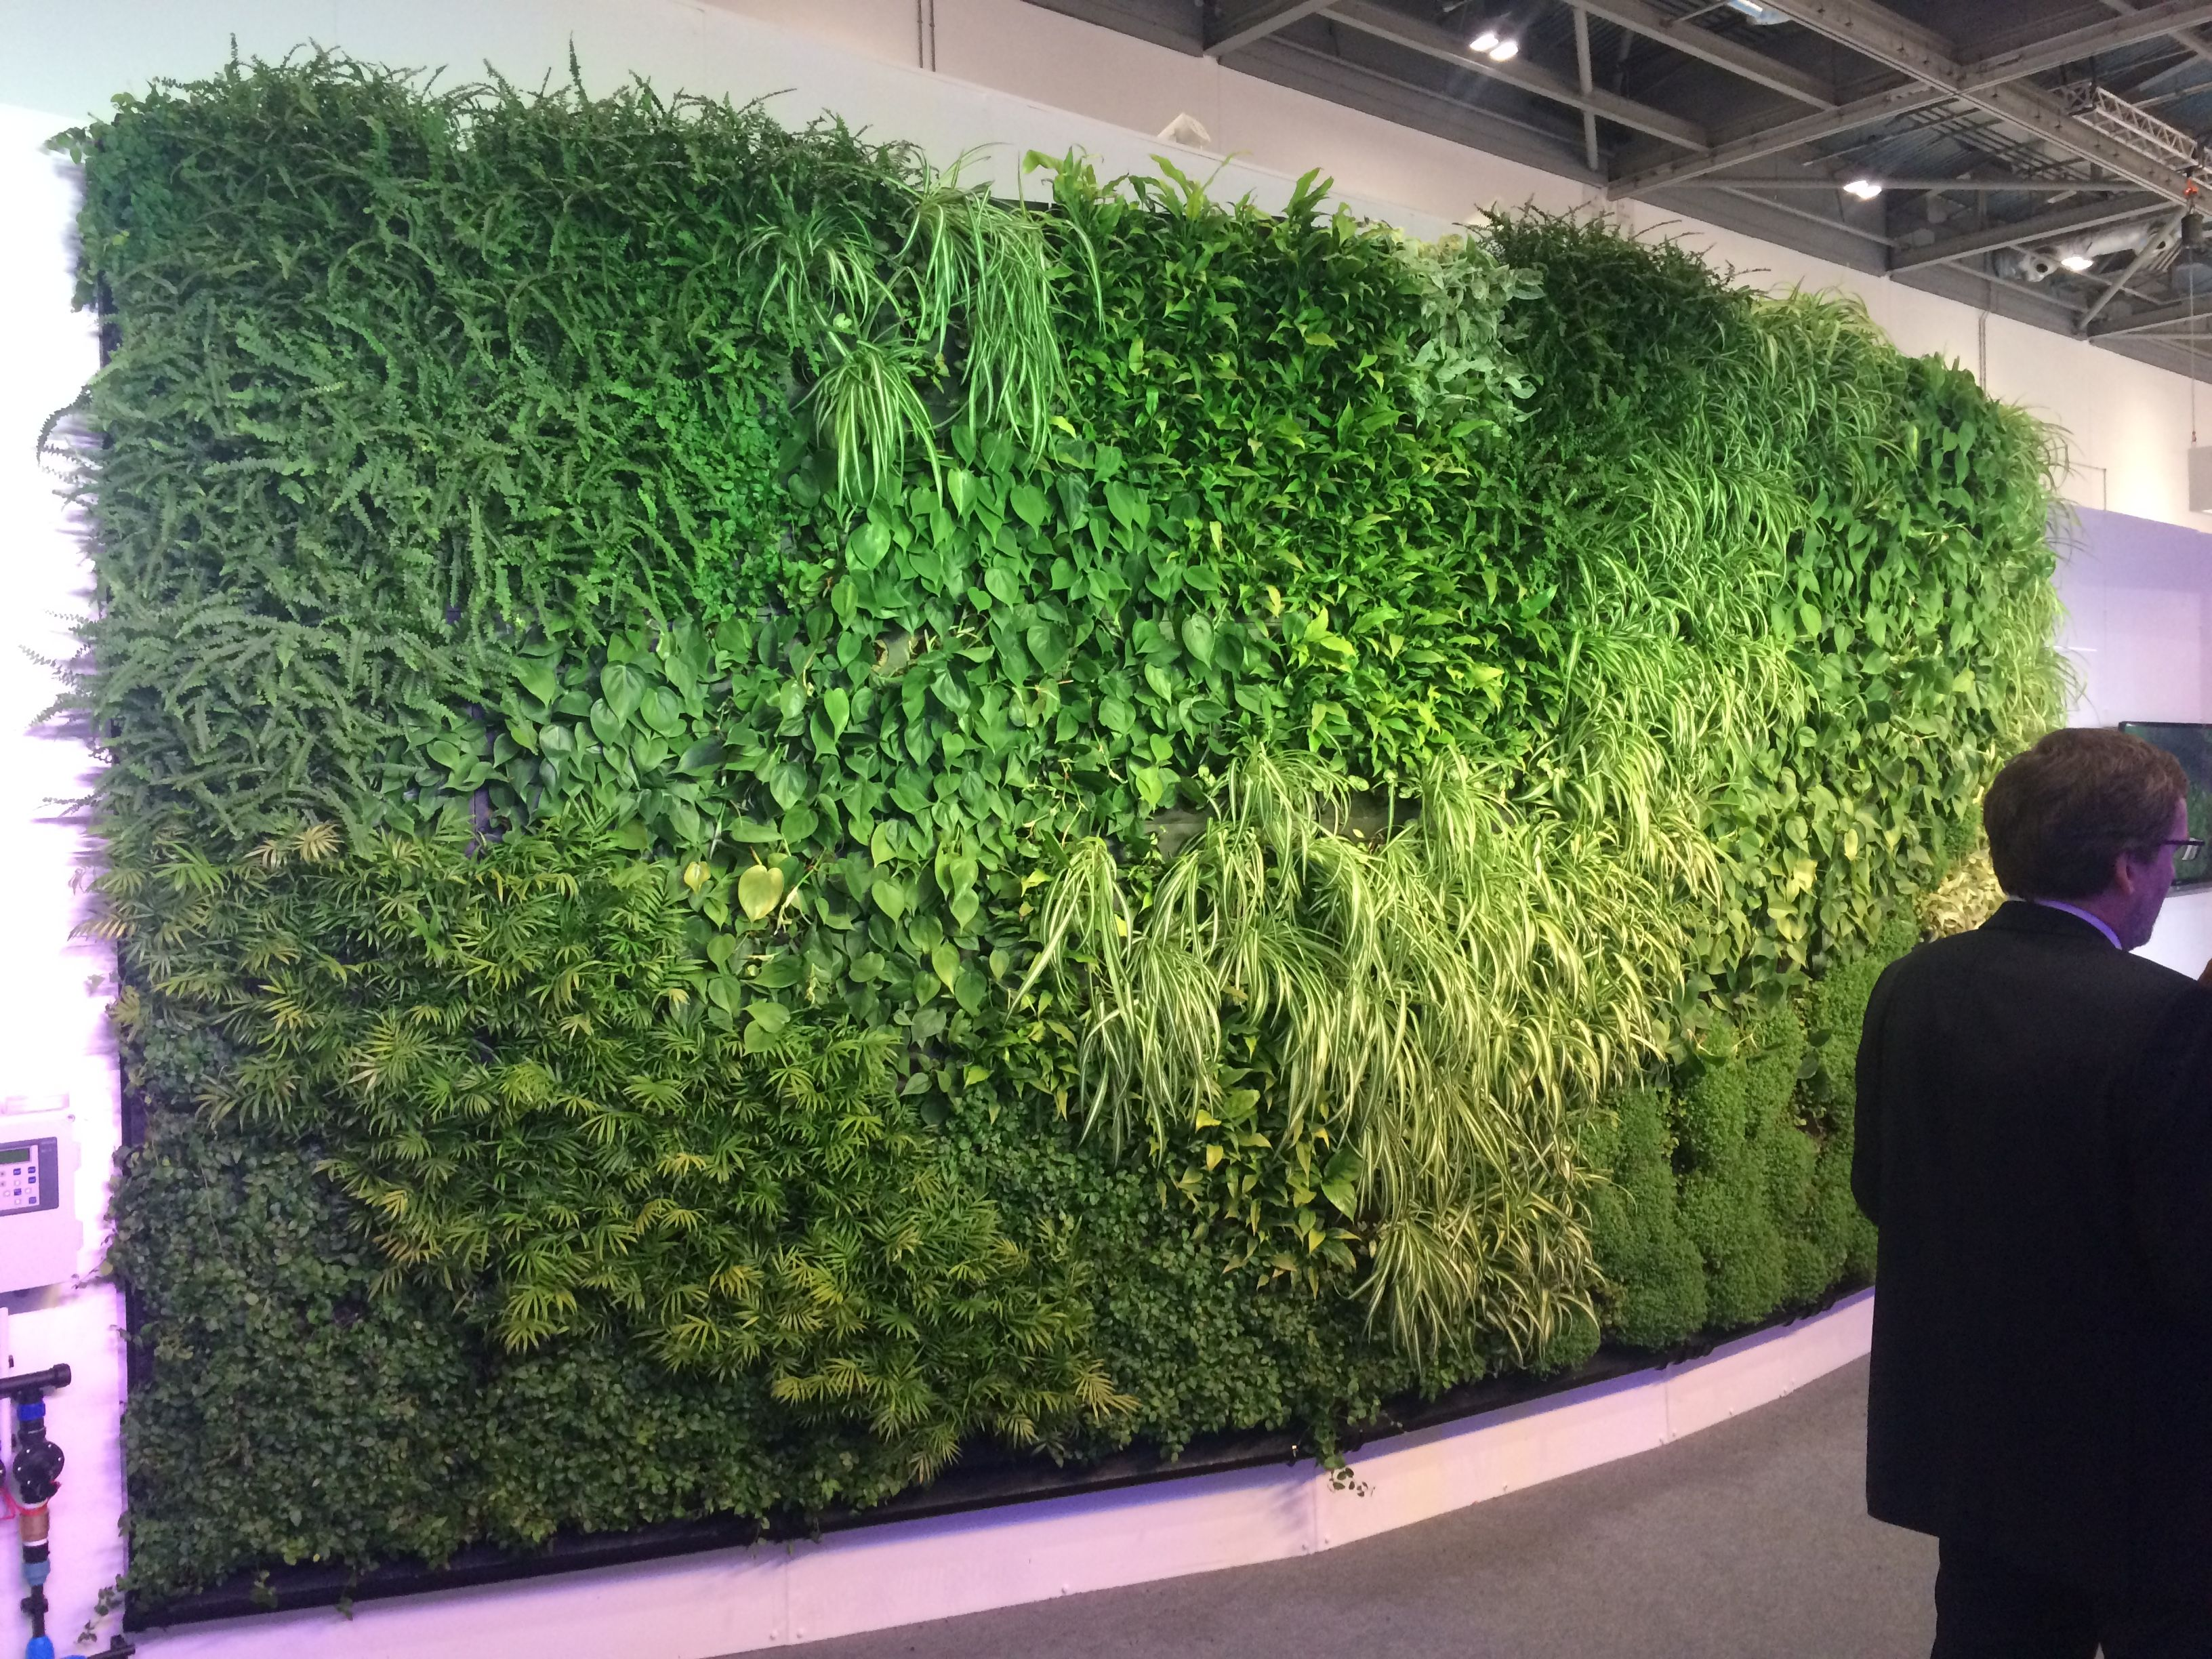 How To Build A Living Wall internal living wallbiotecture at eco build 2015 | living